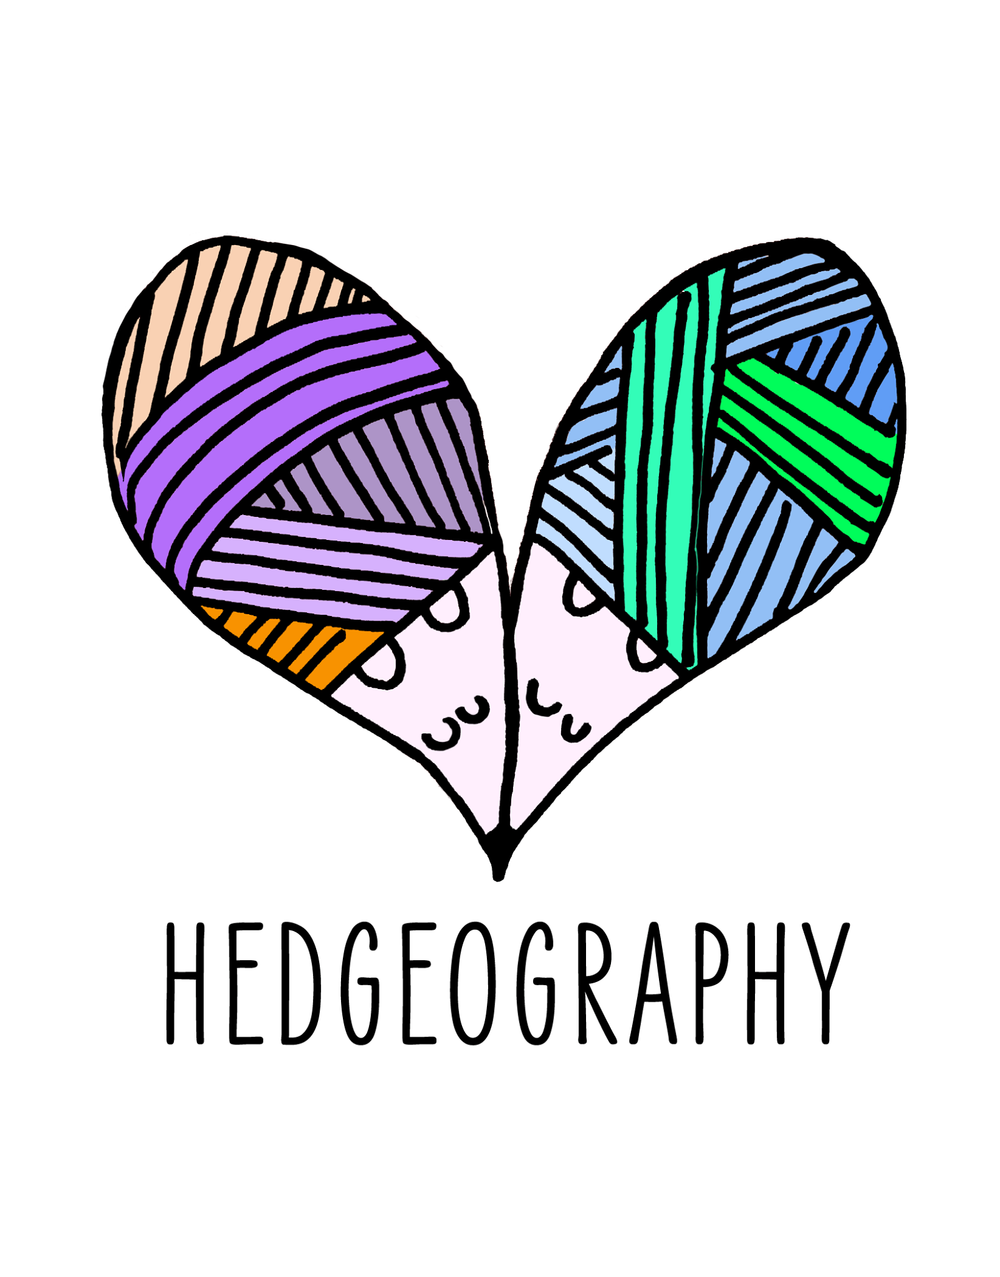 Hedgeography was awesome enough to donate some of their sales at our show to PETA.